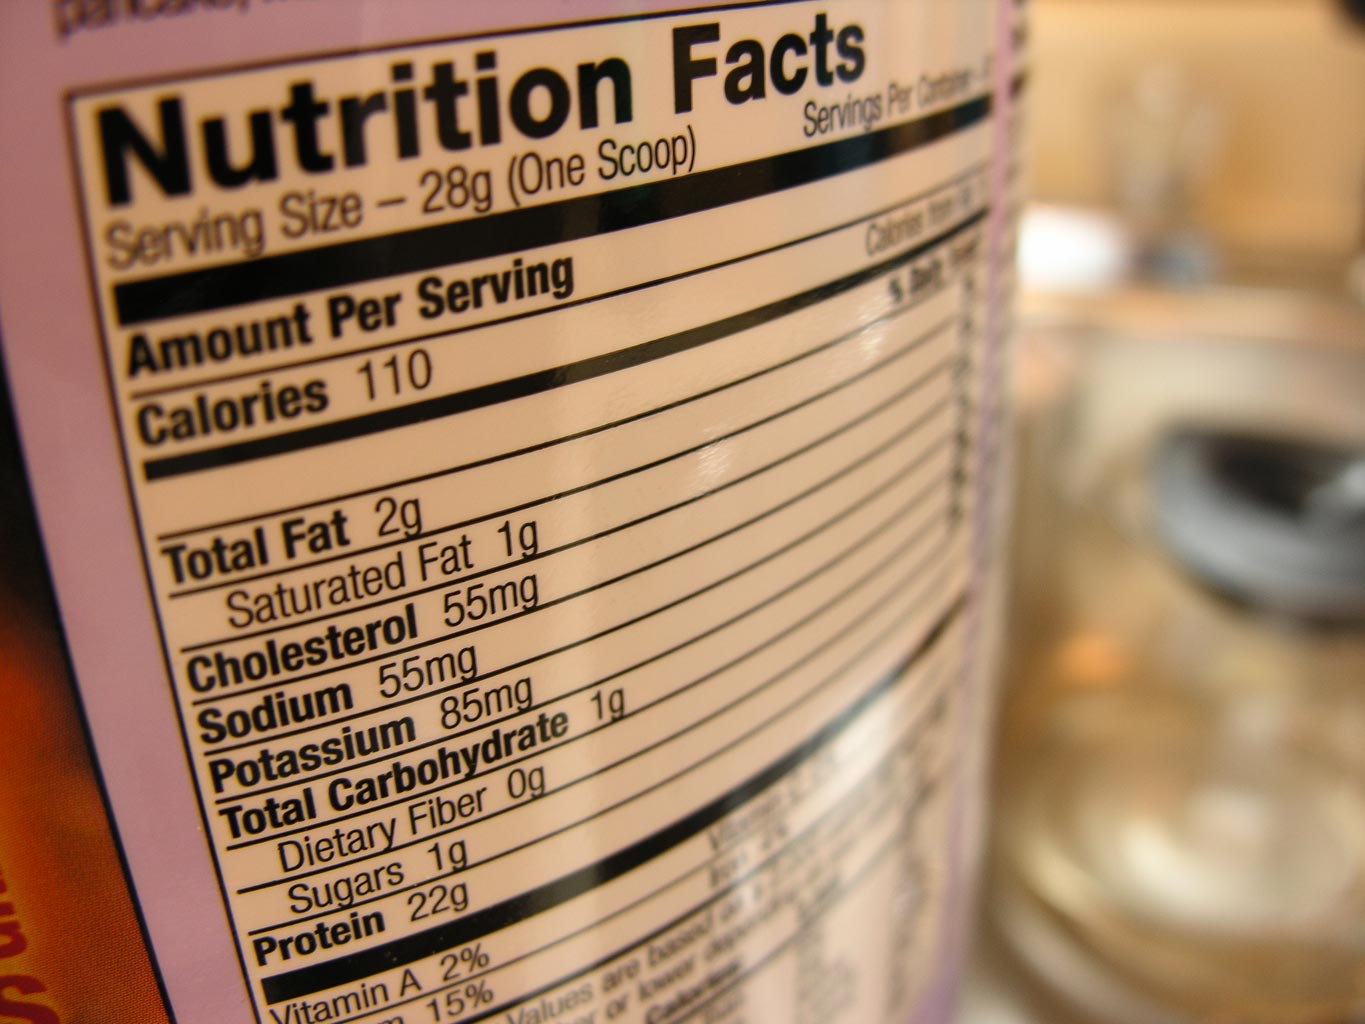 Some nutrition facts